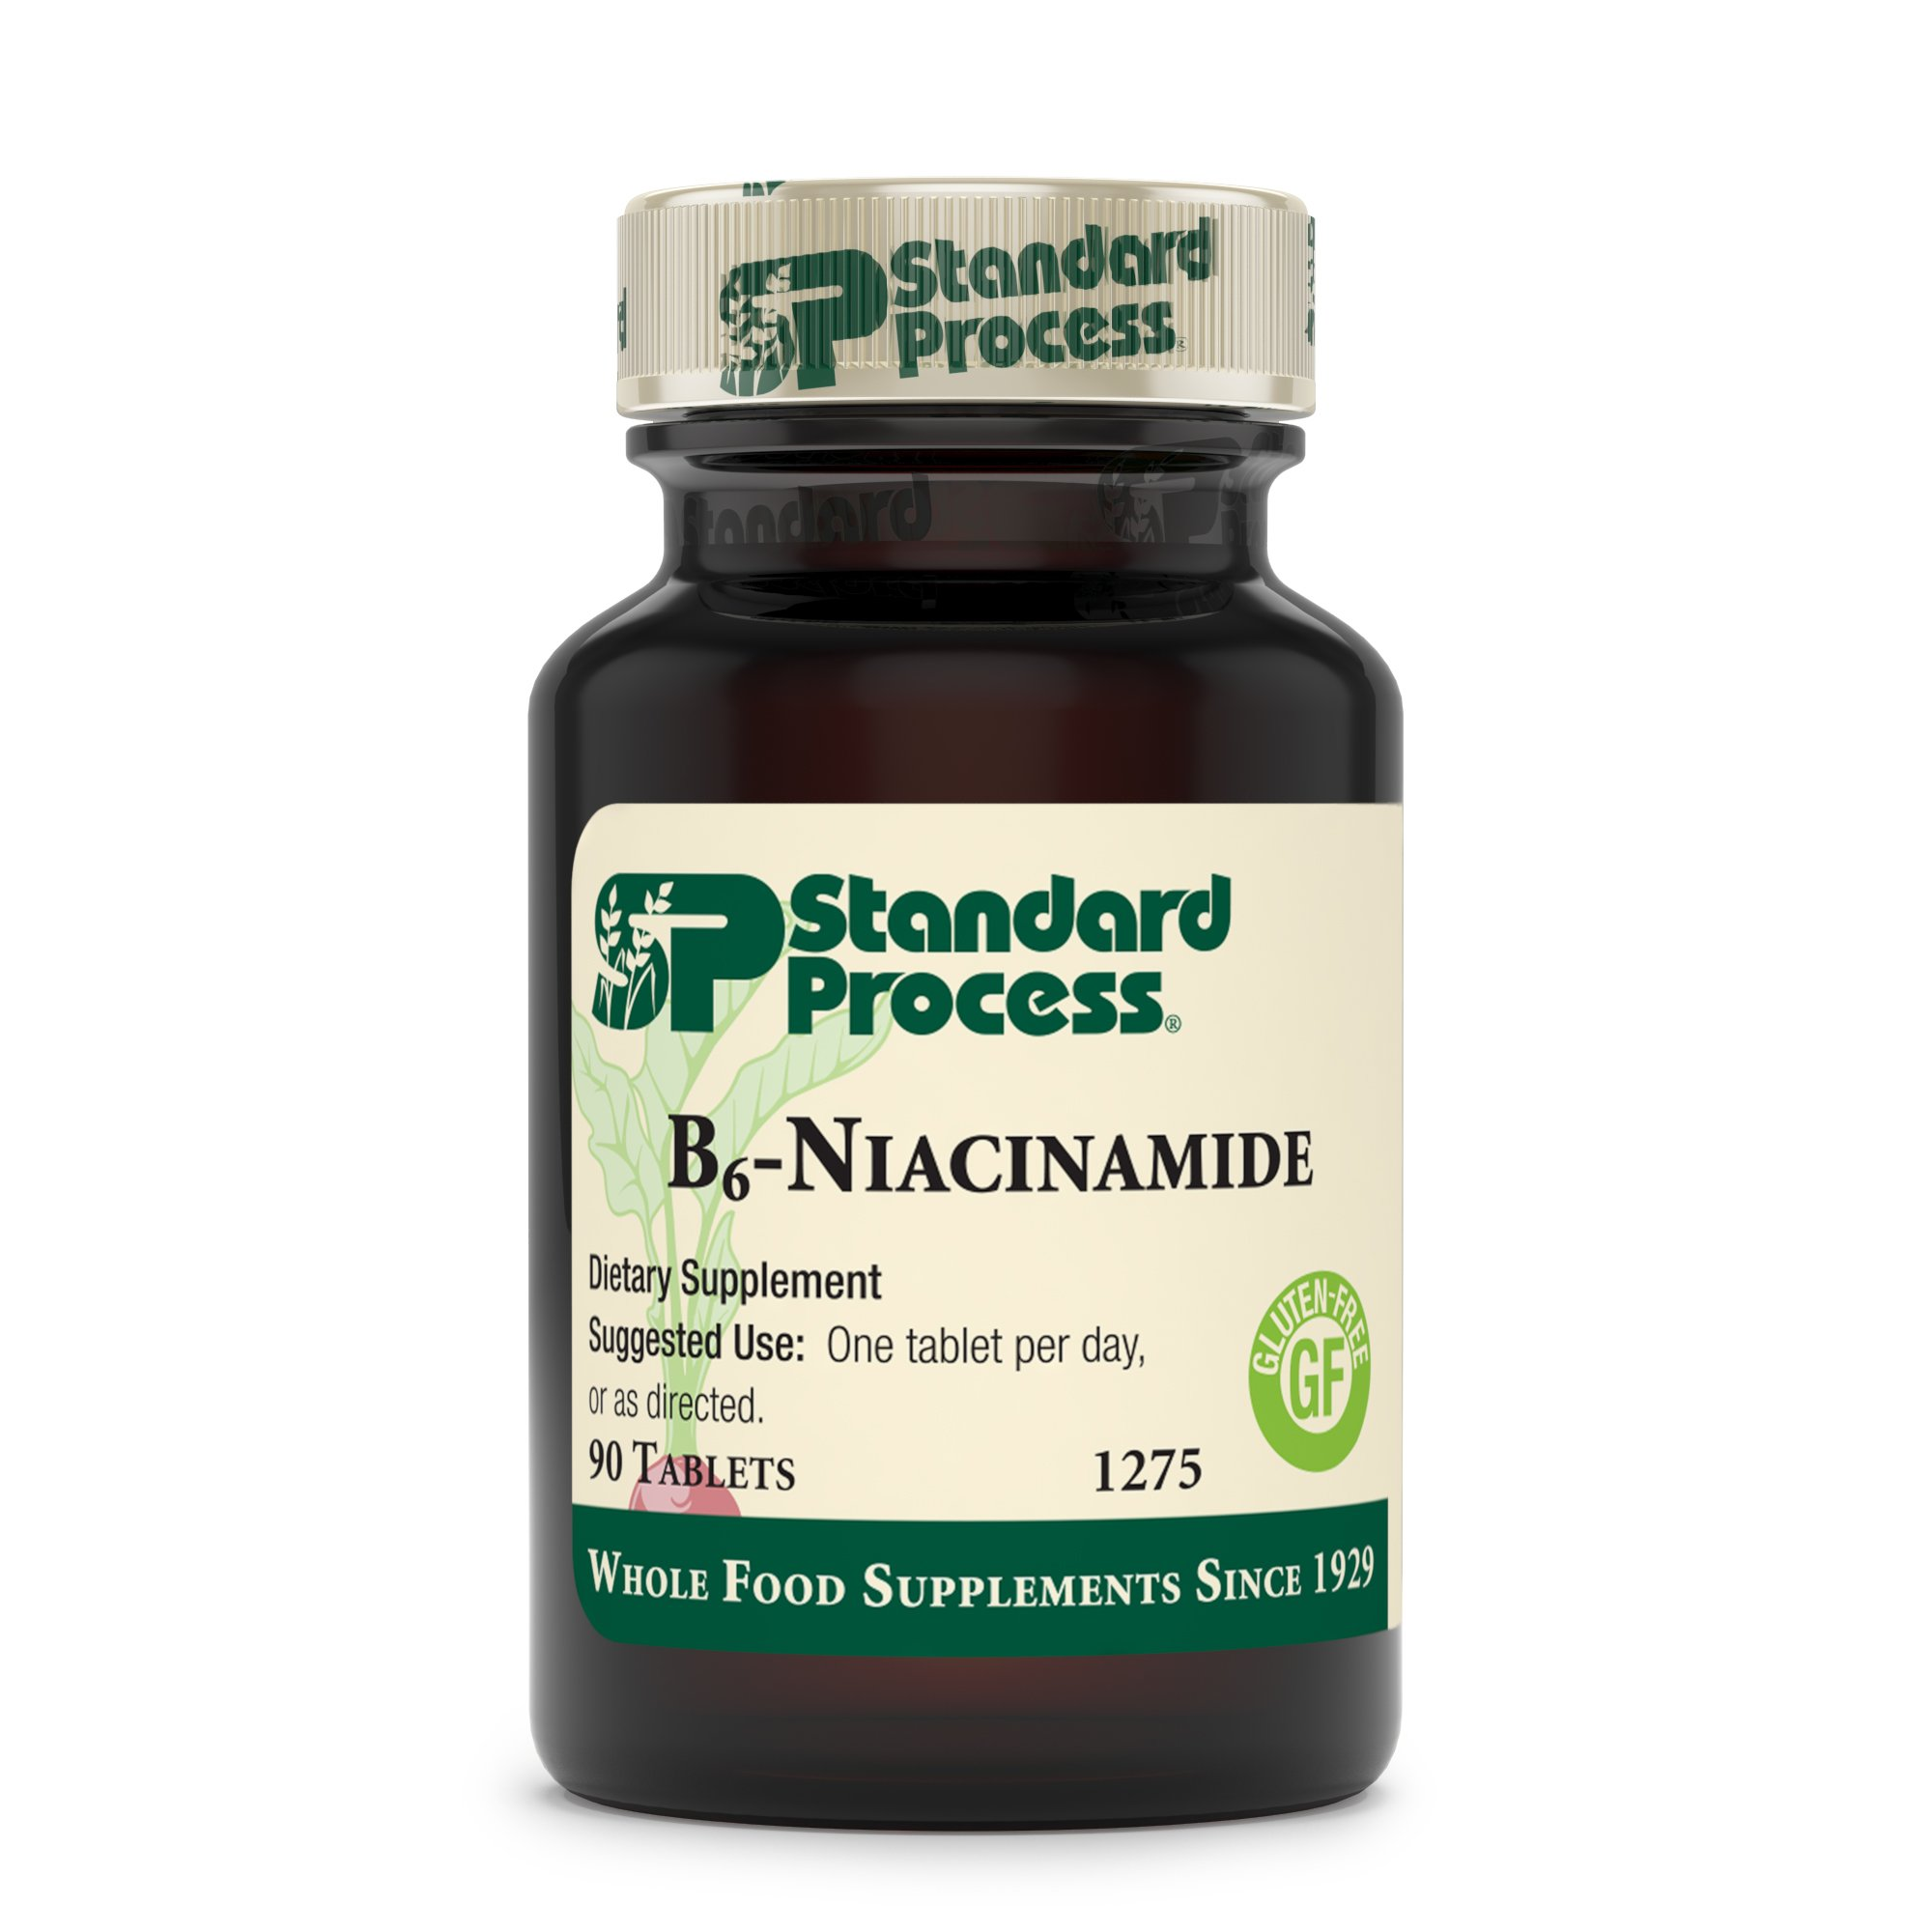 Standard Process - B6 Niacinamide - Gluten Free B-Vitamin Supplement, 50 mg Vitamin B6, 10 mg Niacin, Supports Energy Metabolism, Cardiovascular, Digestive, Endocrine, Nervous Systems - 90 Tablets by Standard Process